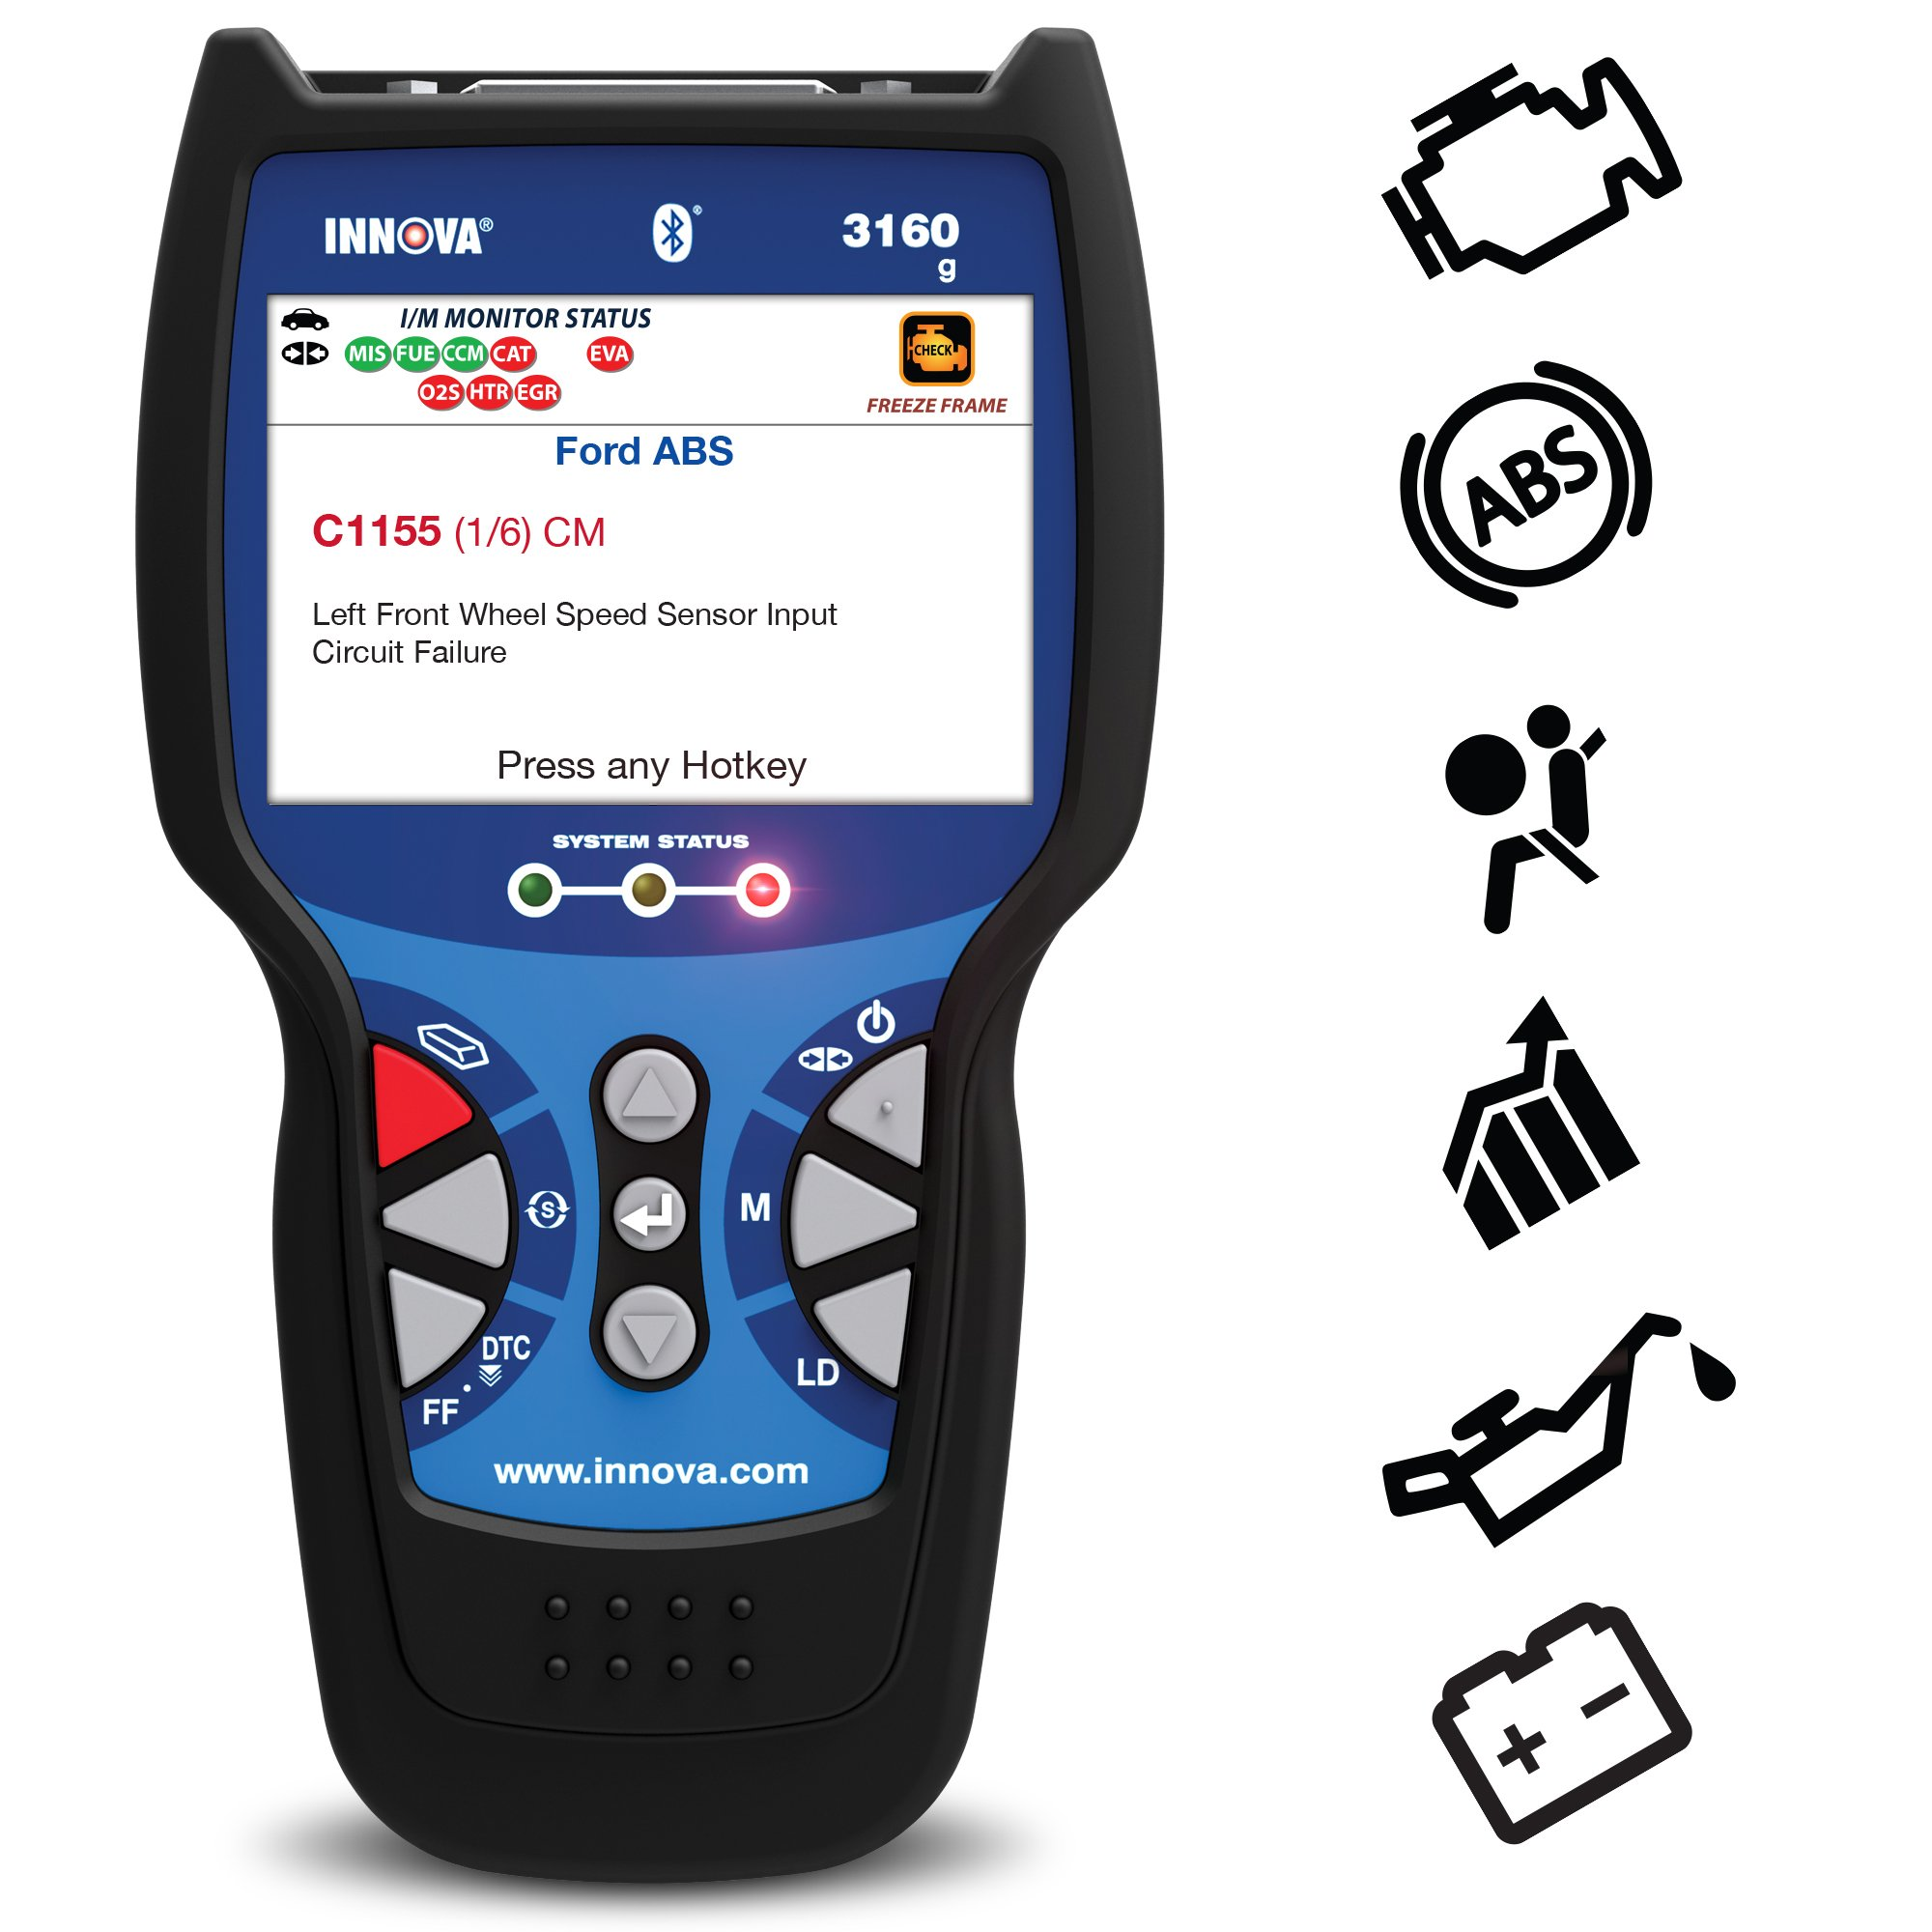 Innova Color Screen with Bluetooth 3160g Code Reader/Scan Tool with ABS, SRS, and Live Data for OBD2 Vehicles by Innova (Image #1)